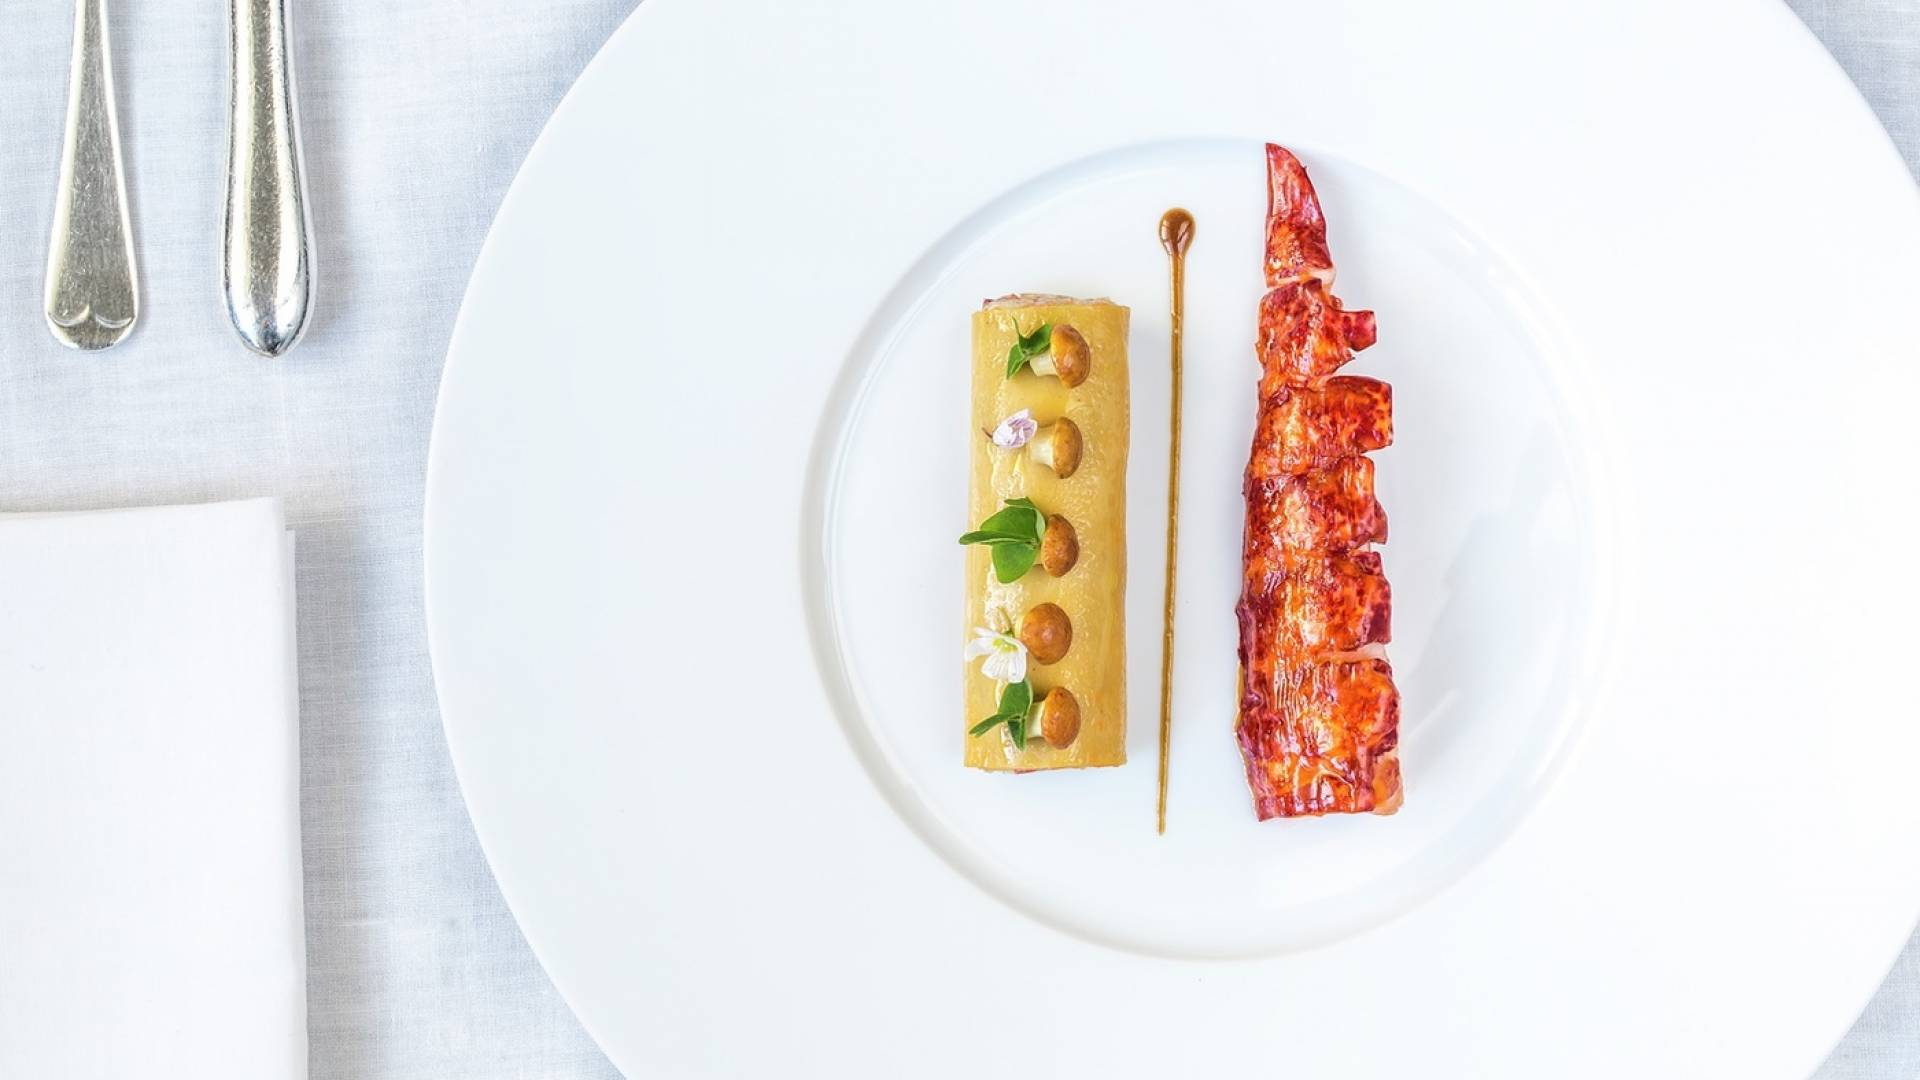 petrus butter poach native lobster truffle cannelloni girolles wood sorrel